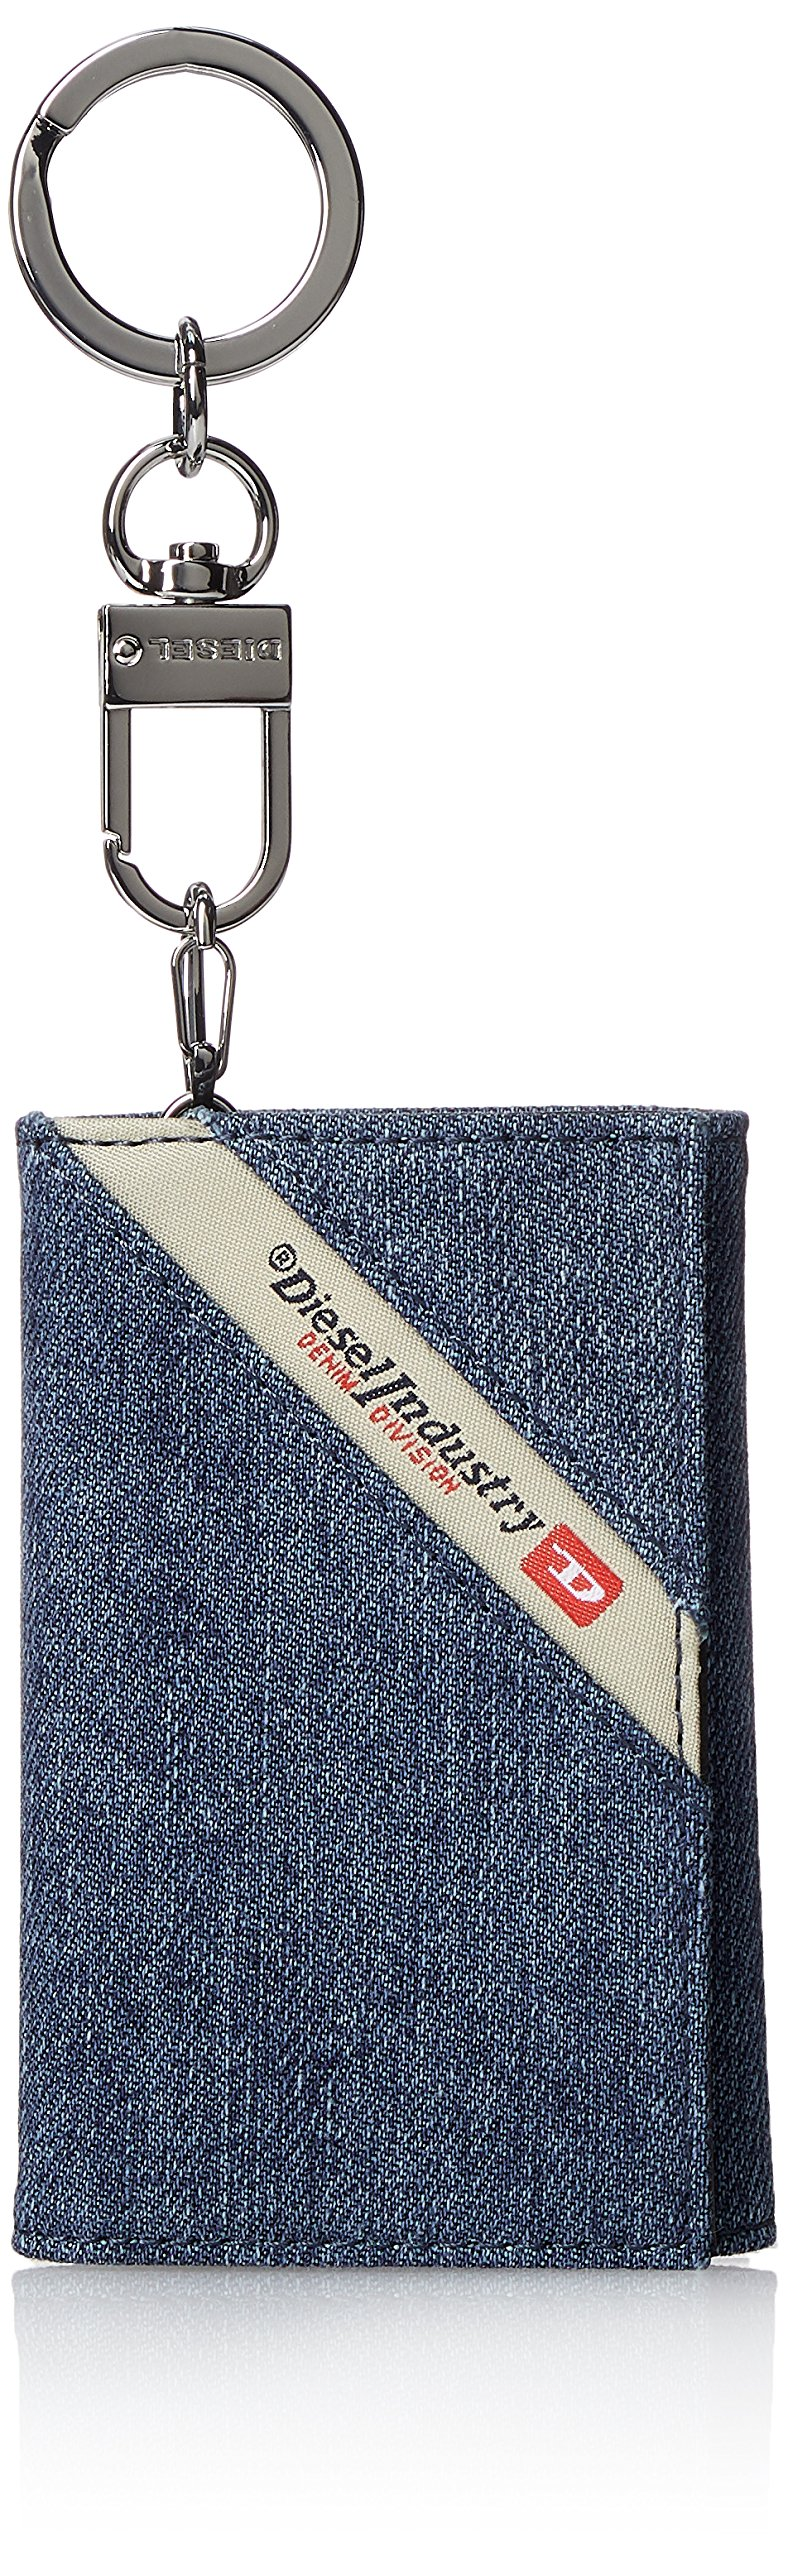 Diesel Men's DENIMLINE KEYCASE O-Key Holder, black/blue denim One Size